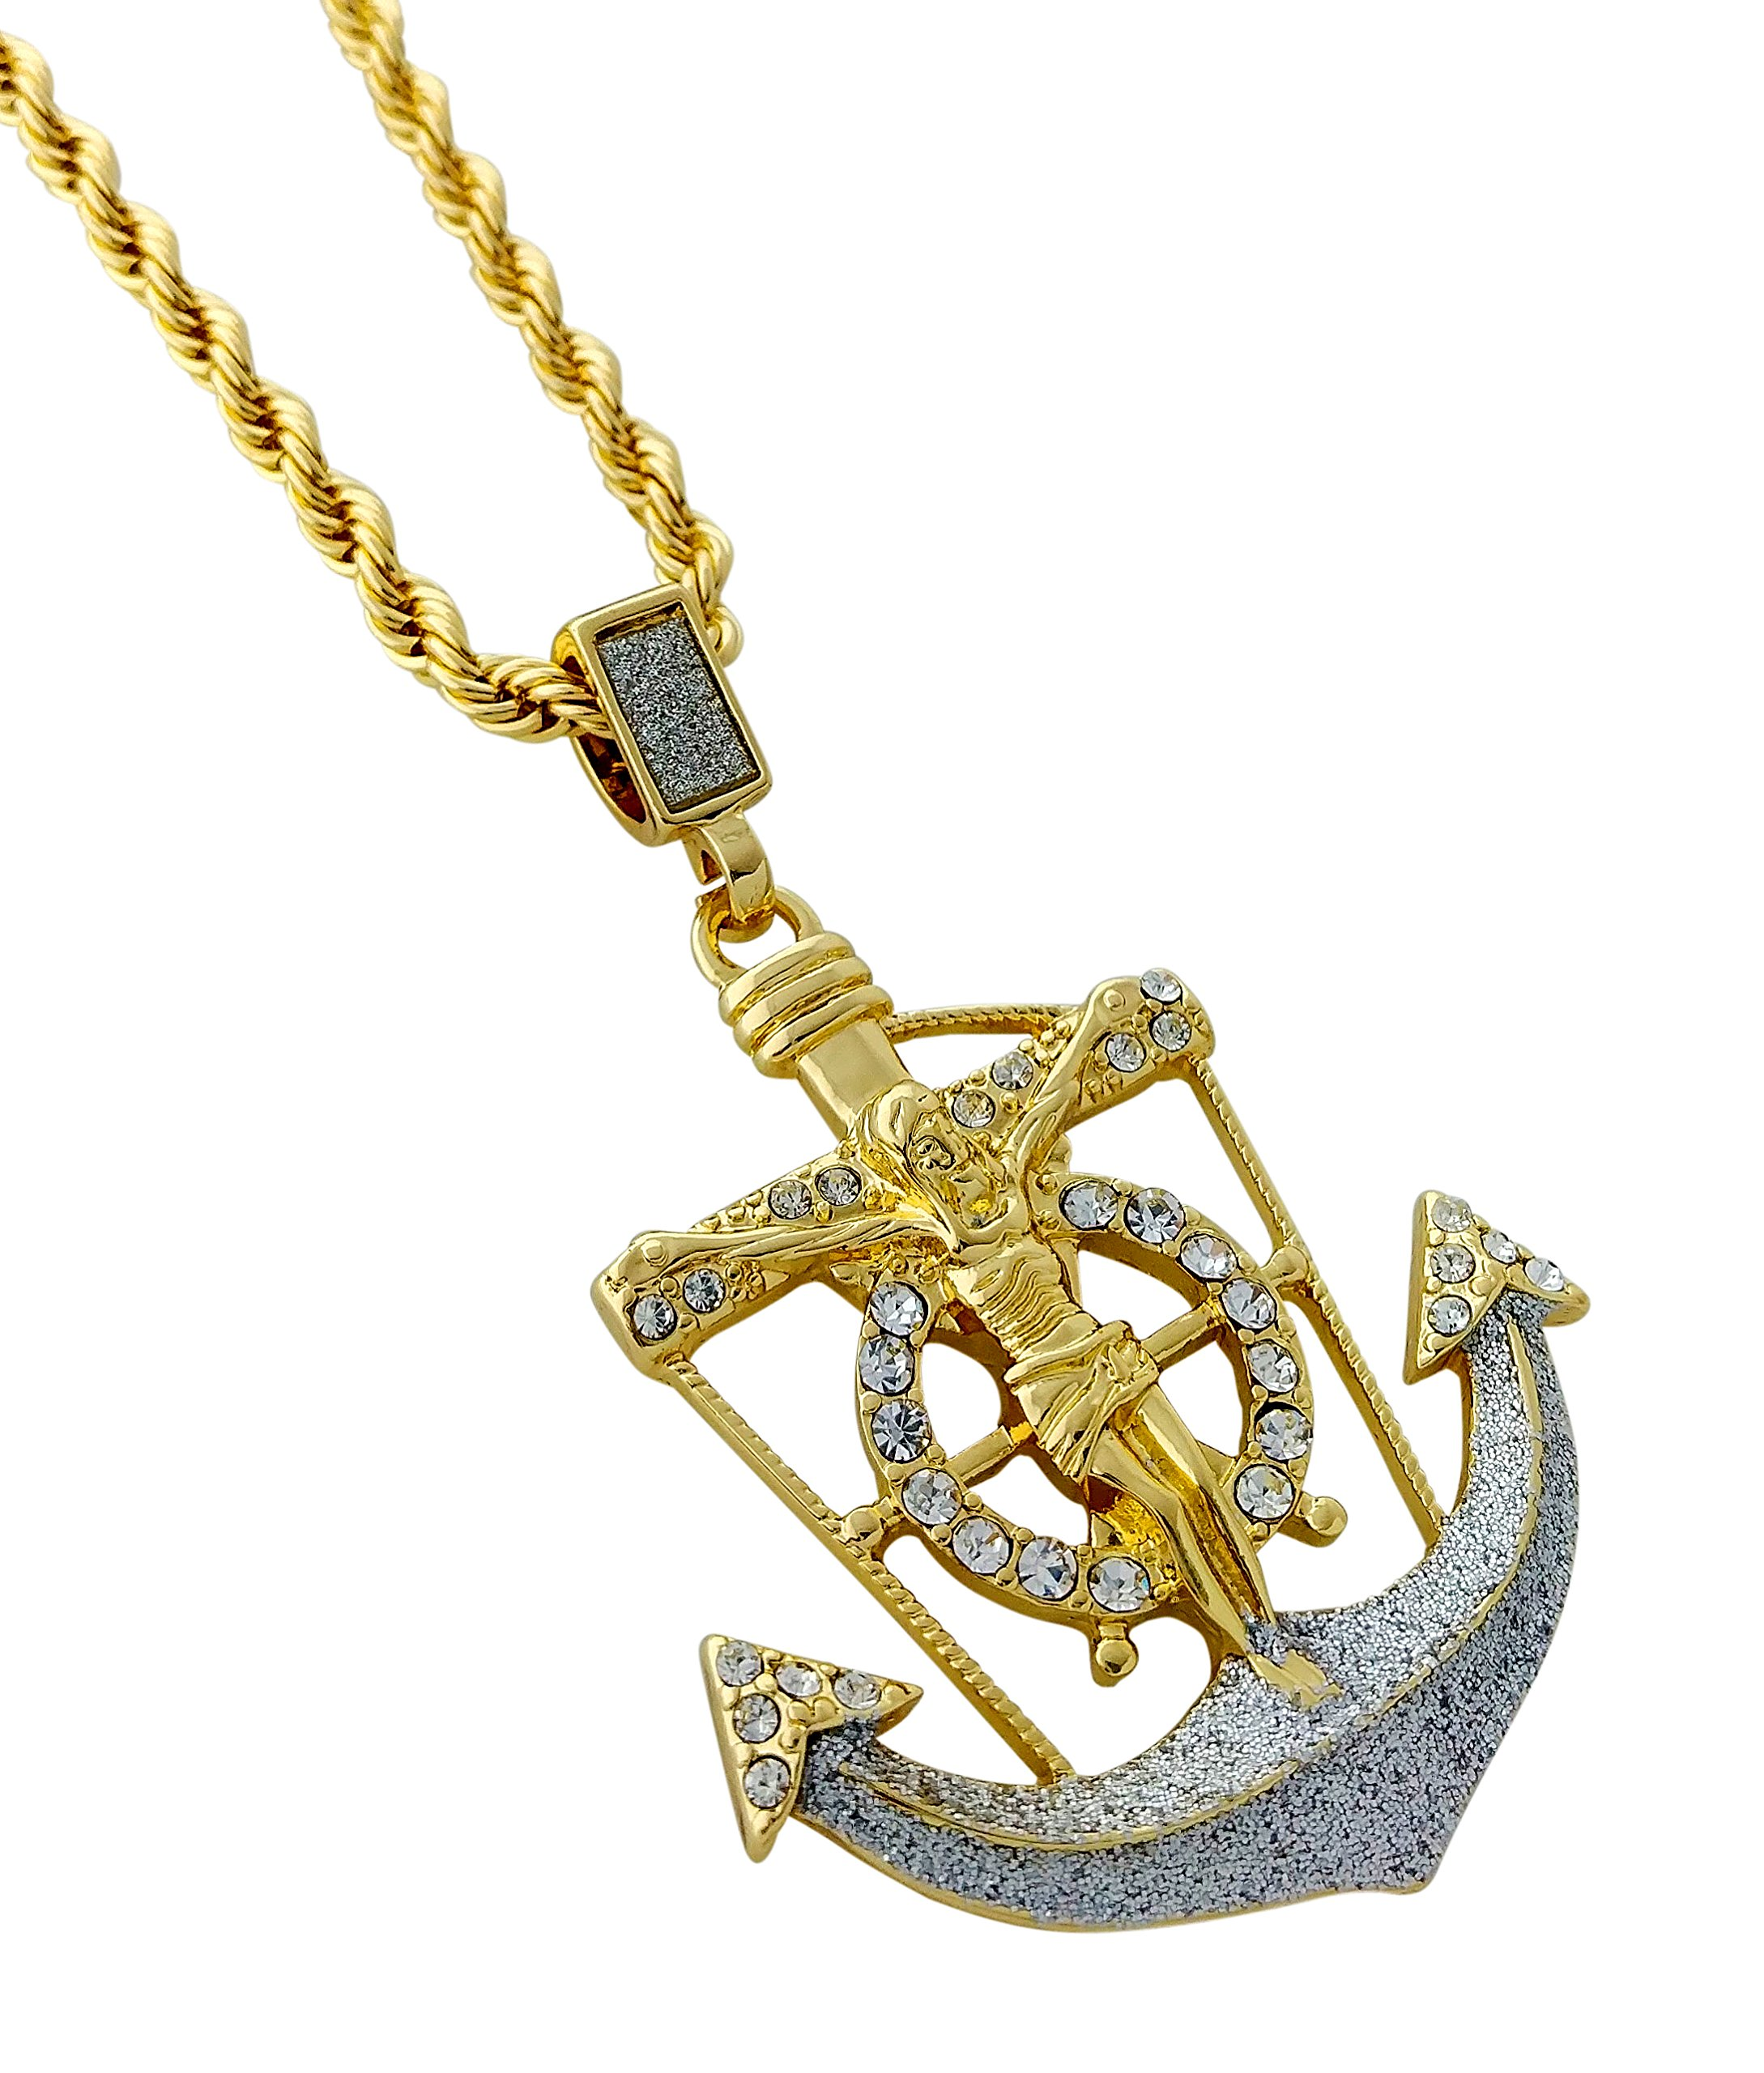 necklace anchor jm chain marcozo download products p plated gold edit